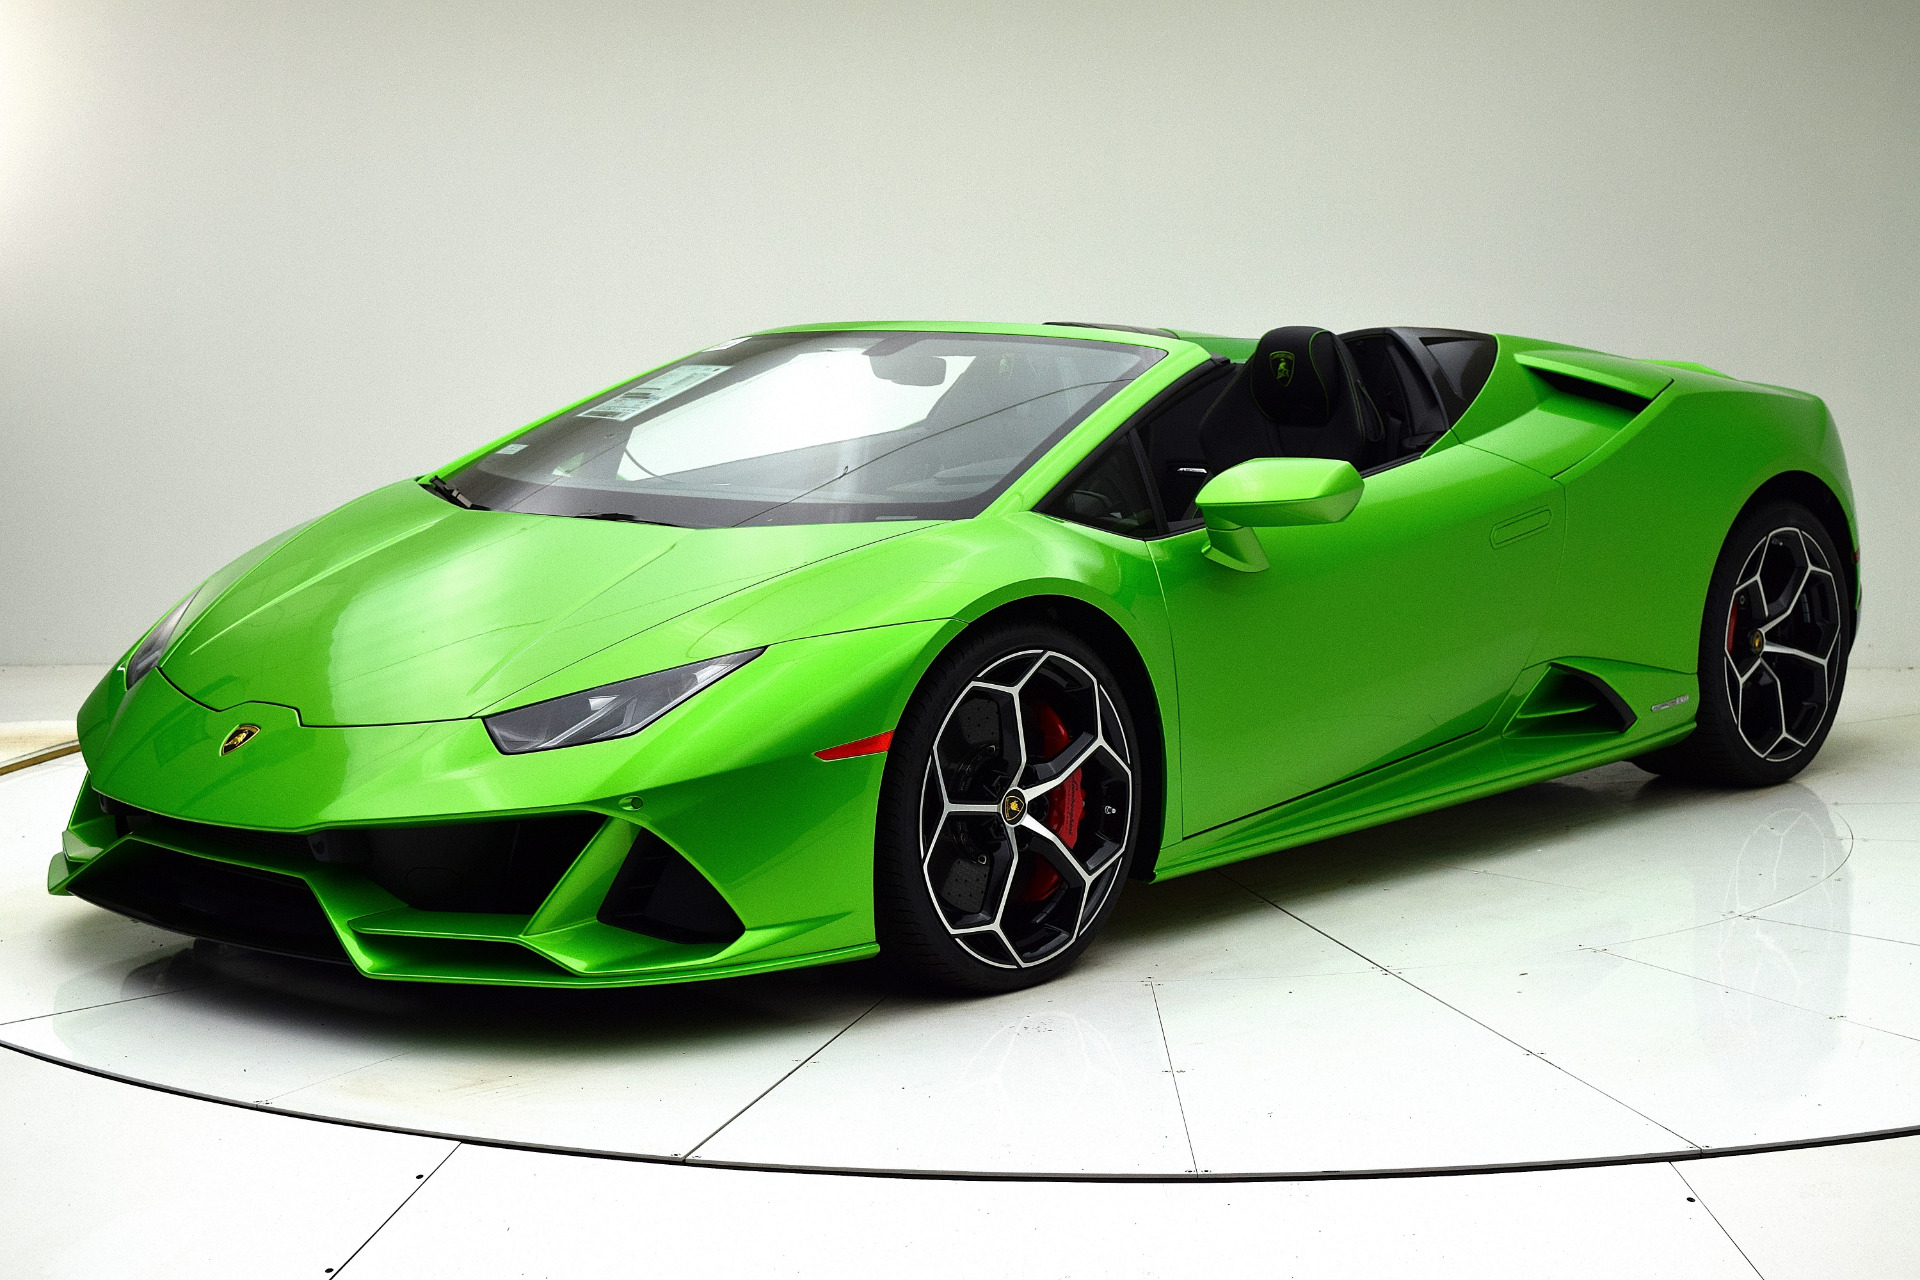 New 2020 Lamborghini Huracan EVO Spyder for sale Sold at F.C. Kerbeck Lamborghini Palmyra N.J. in Palmyra NJ 08065 2